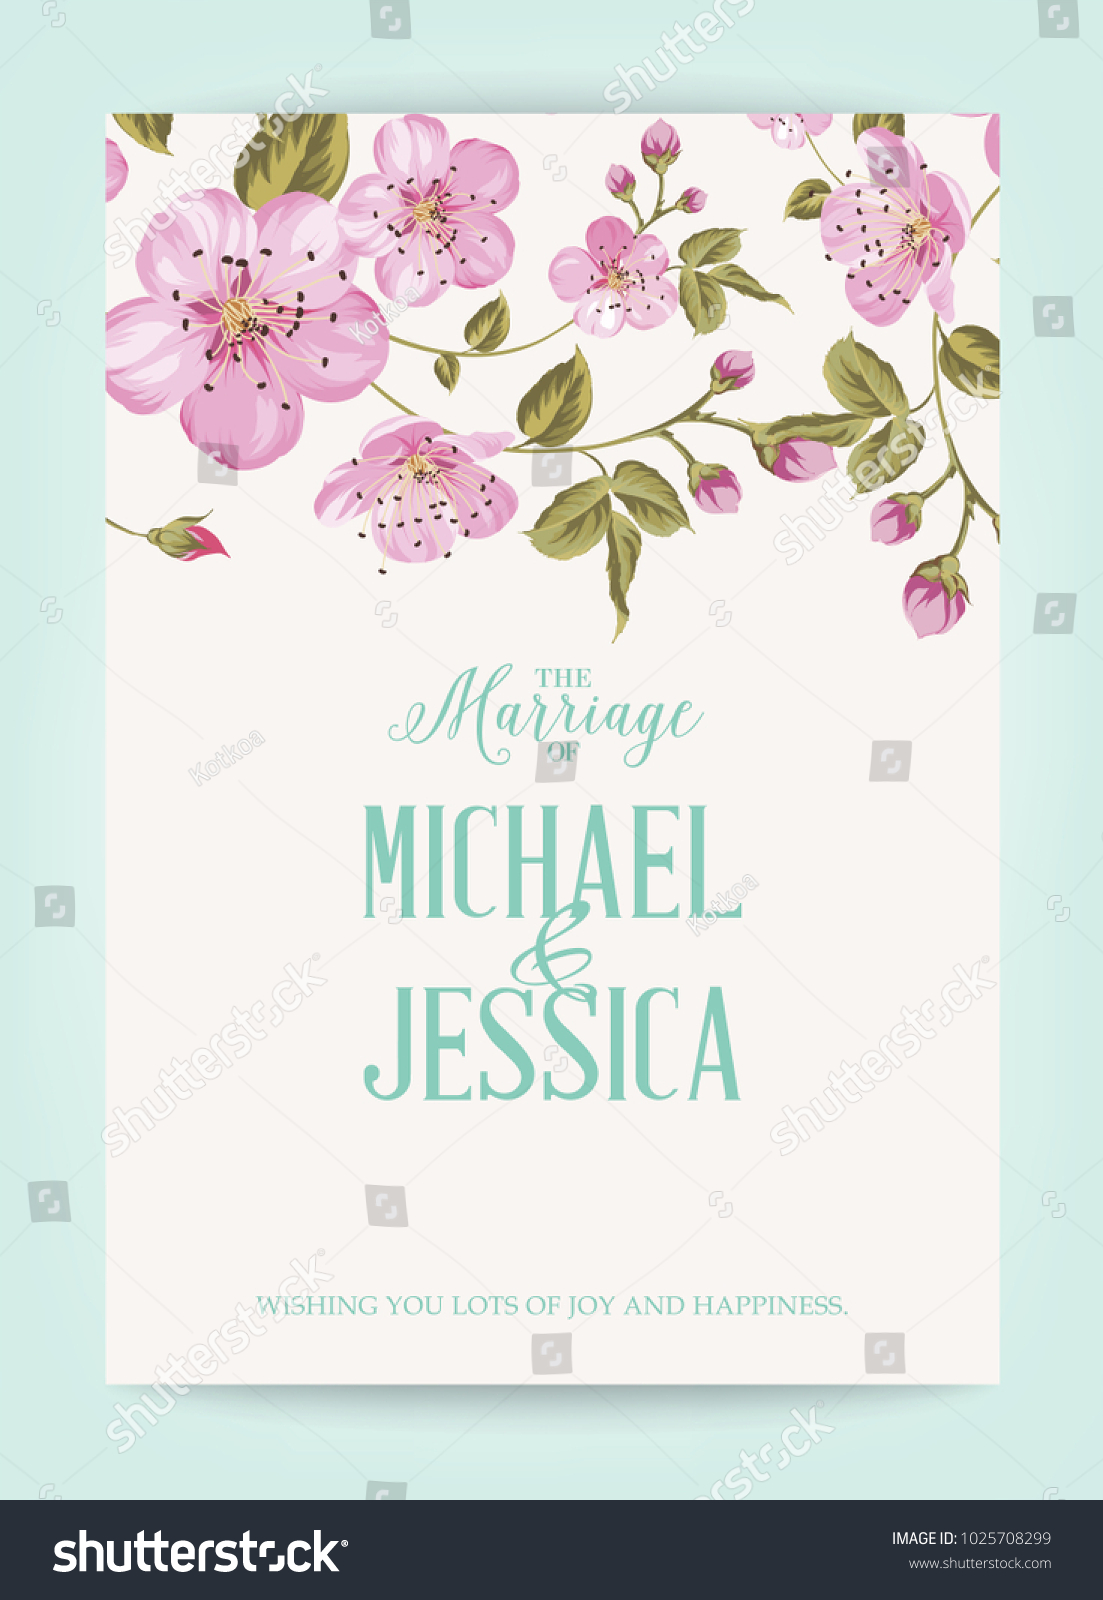 Marriage Invitation Card Pink Flowers Vintage Stock Vector